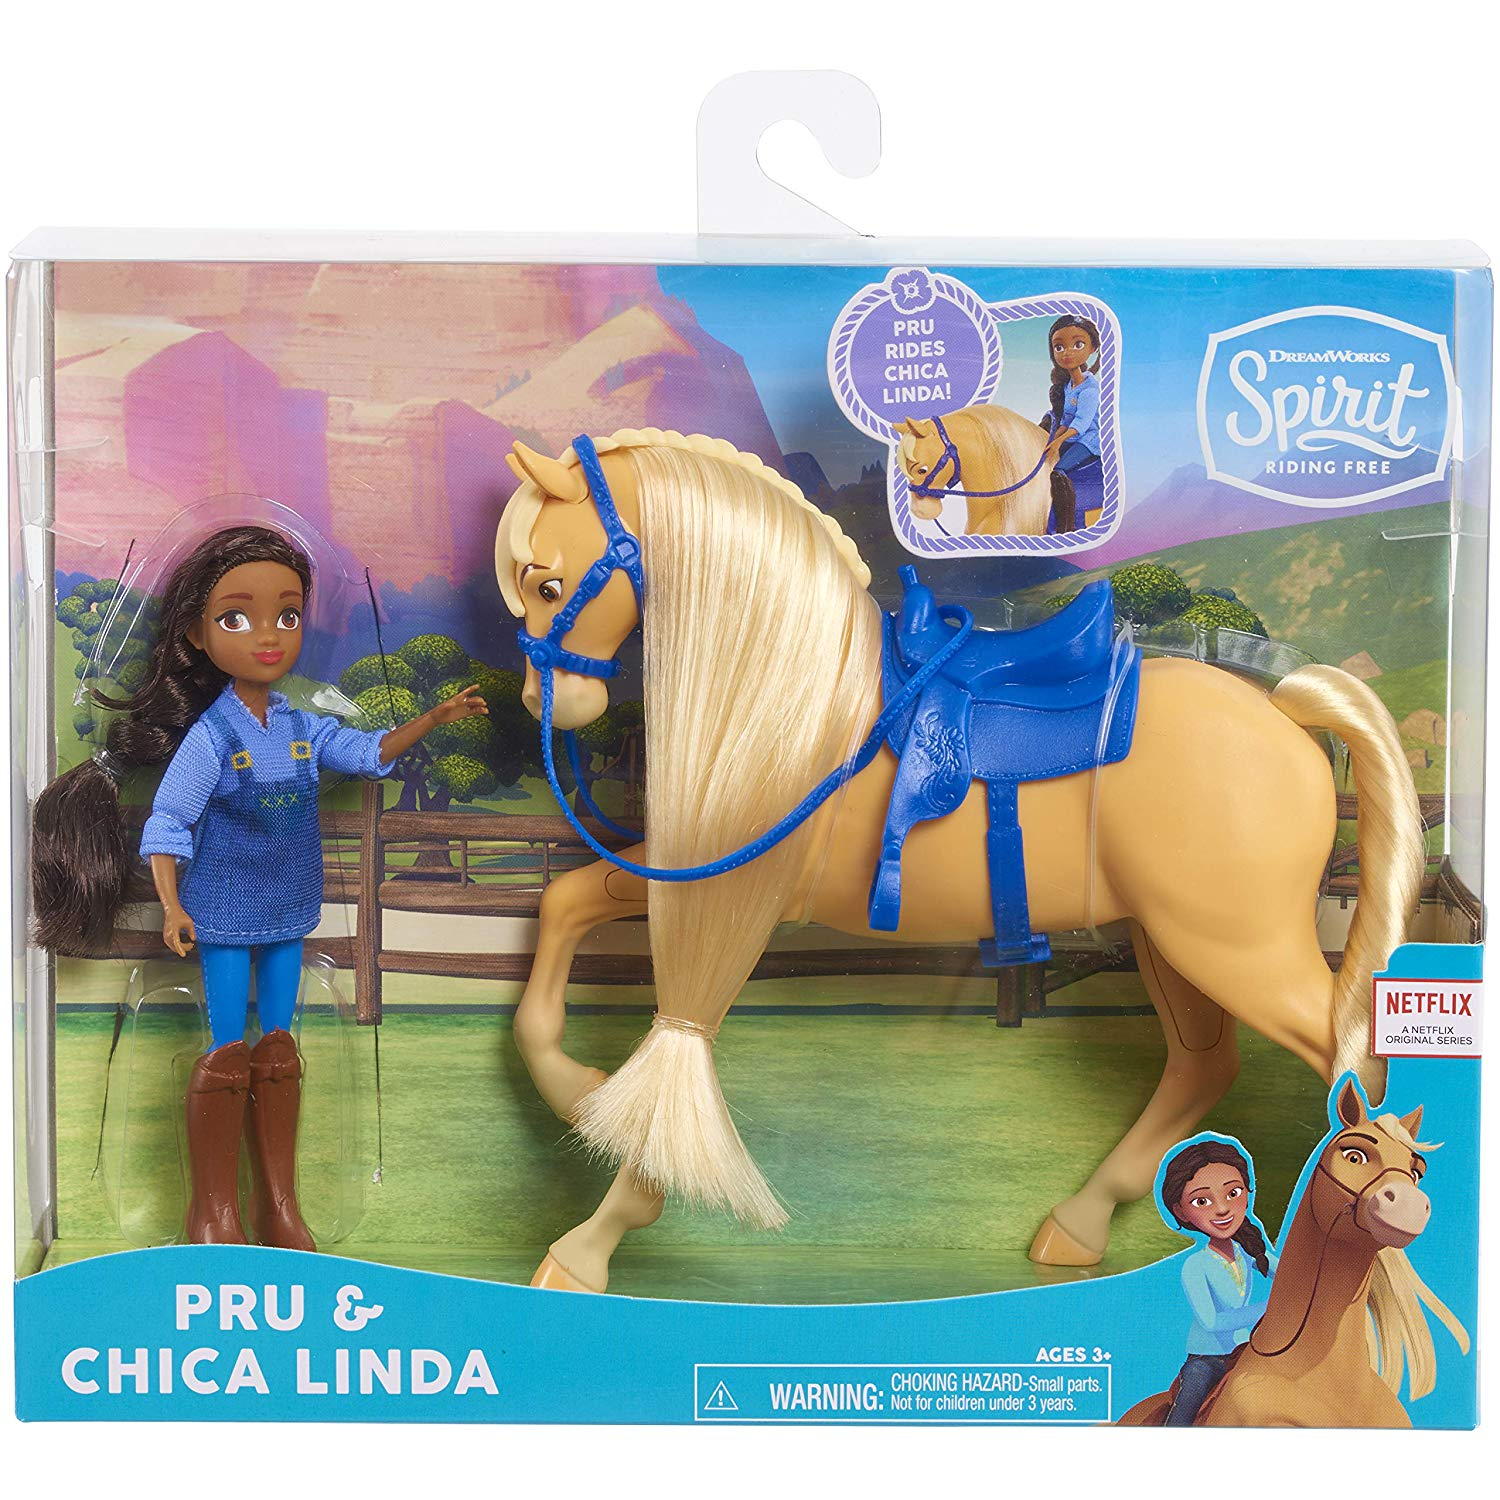 """DreamWorks Spirit Riding Free Collector Doll & Horse PRU & Chica Linda. Relive the adventures of Lucky, spirit, and all their friends from the DreamWorks Animation television series, spirit riding free! This doll and horse set is a perfect start to a new Horse collection. Each girl stands 5"""" tall and is accompanied by her horse companion."""